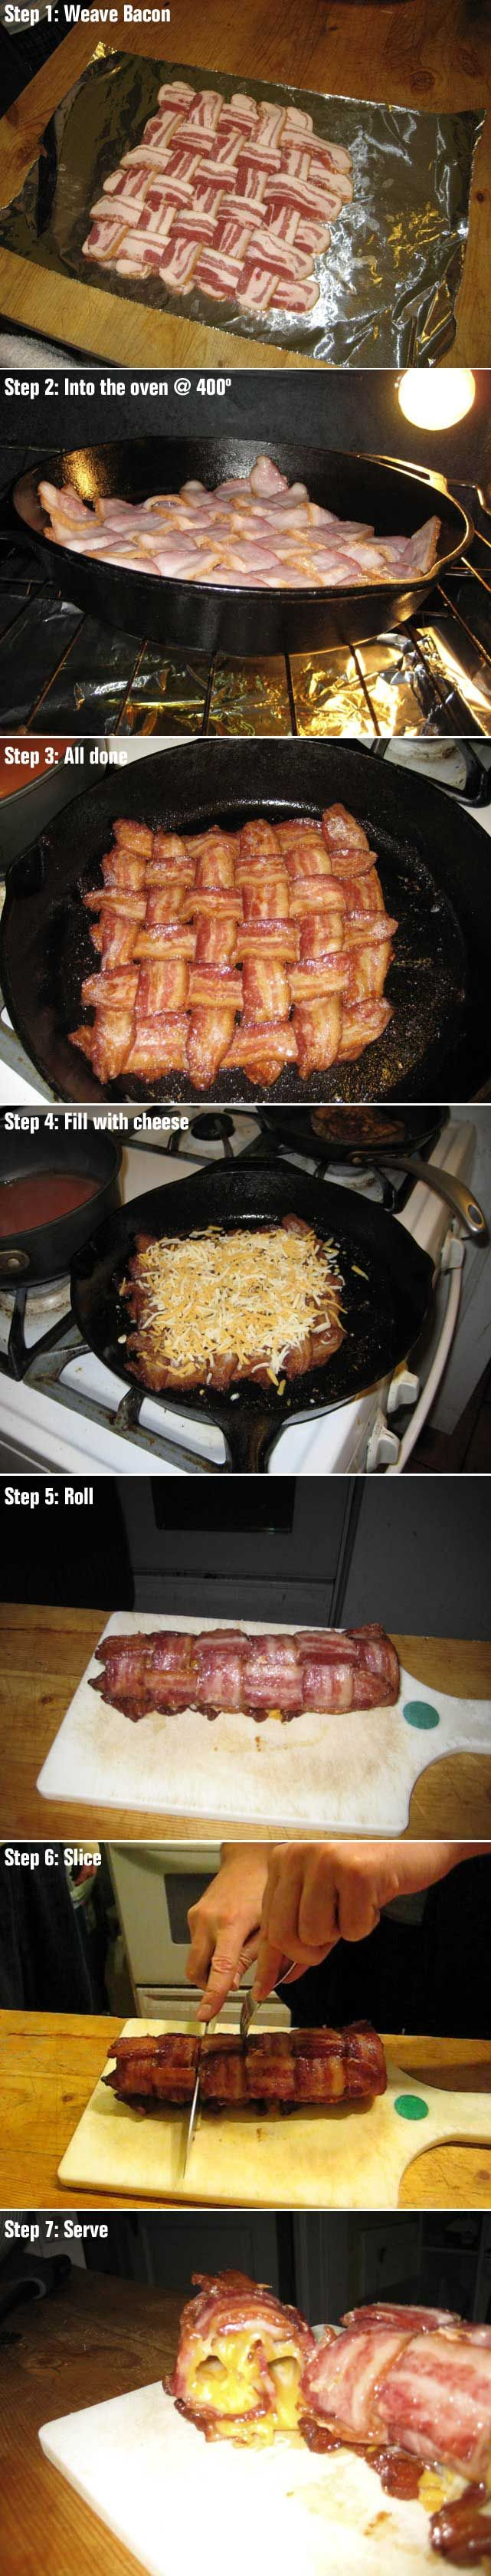 brilliant: Baconweav, Heart Attack, Bacon Cheese, Food, Bacon Bacon, Bacon Weave, Bacon Weaving, Recipe For Success, Cheese Rolls